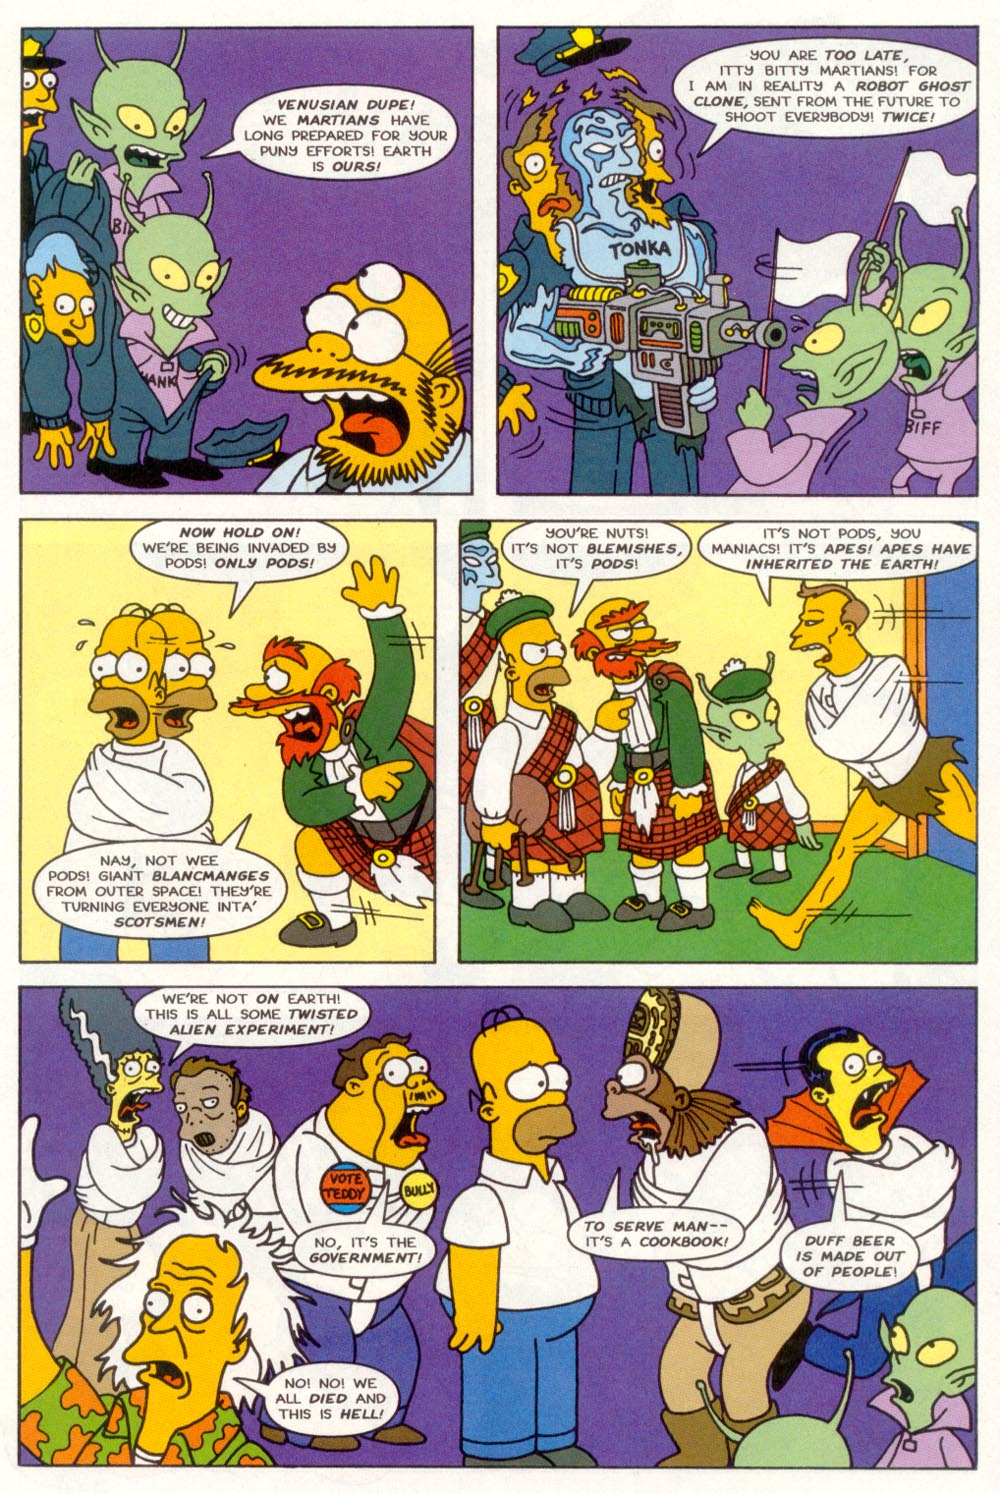 Read online Treehouse of Horror comic -  Issue #3 - 24